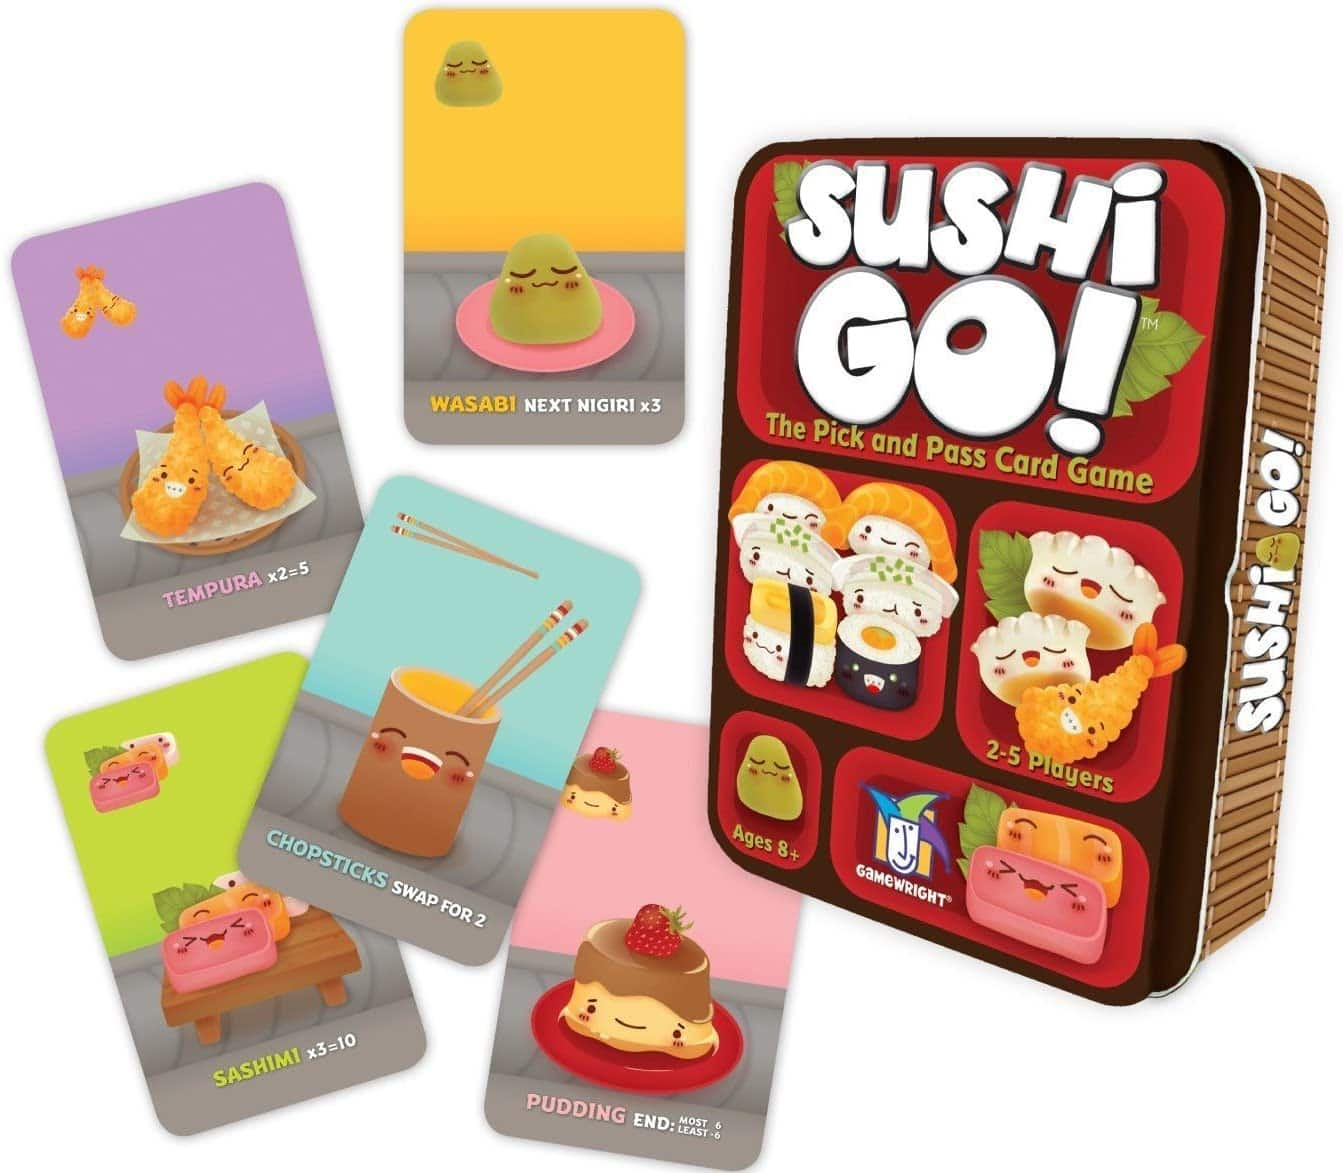 Sushi Go! - The Pick and Pass Card Game $6.75 + Free Shipping w/ Amazon Prime or Orders $25+